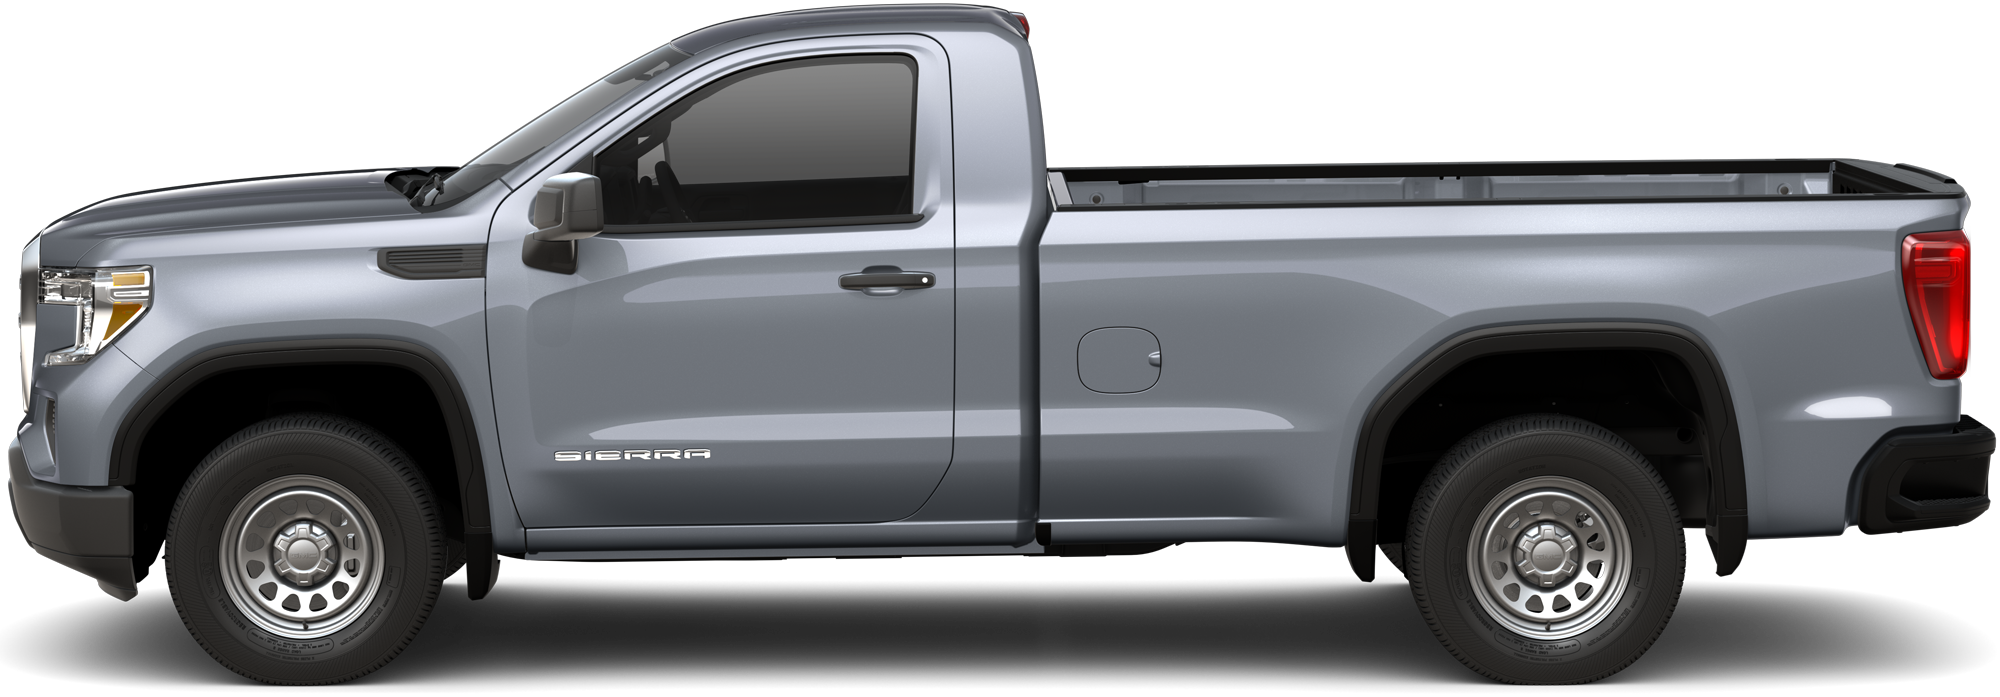 2021 GMC Sierra 1500 Truck Base